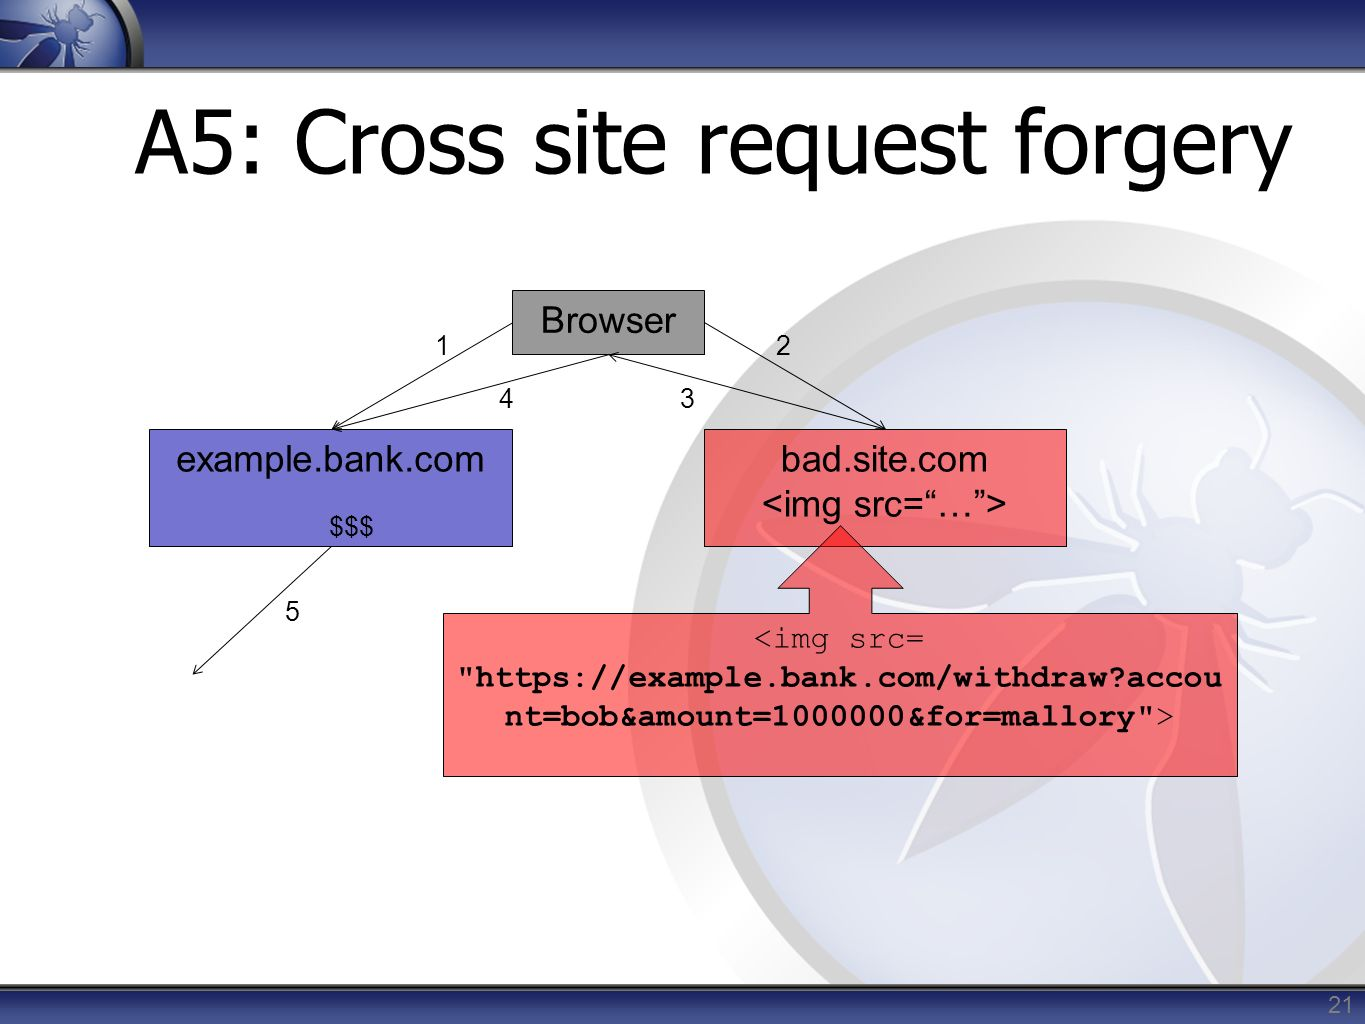 A5: Cross site request forgery